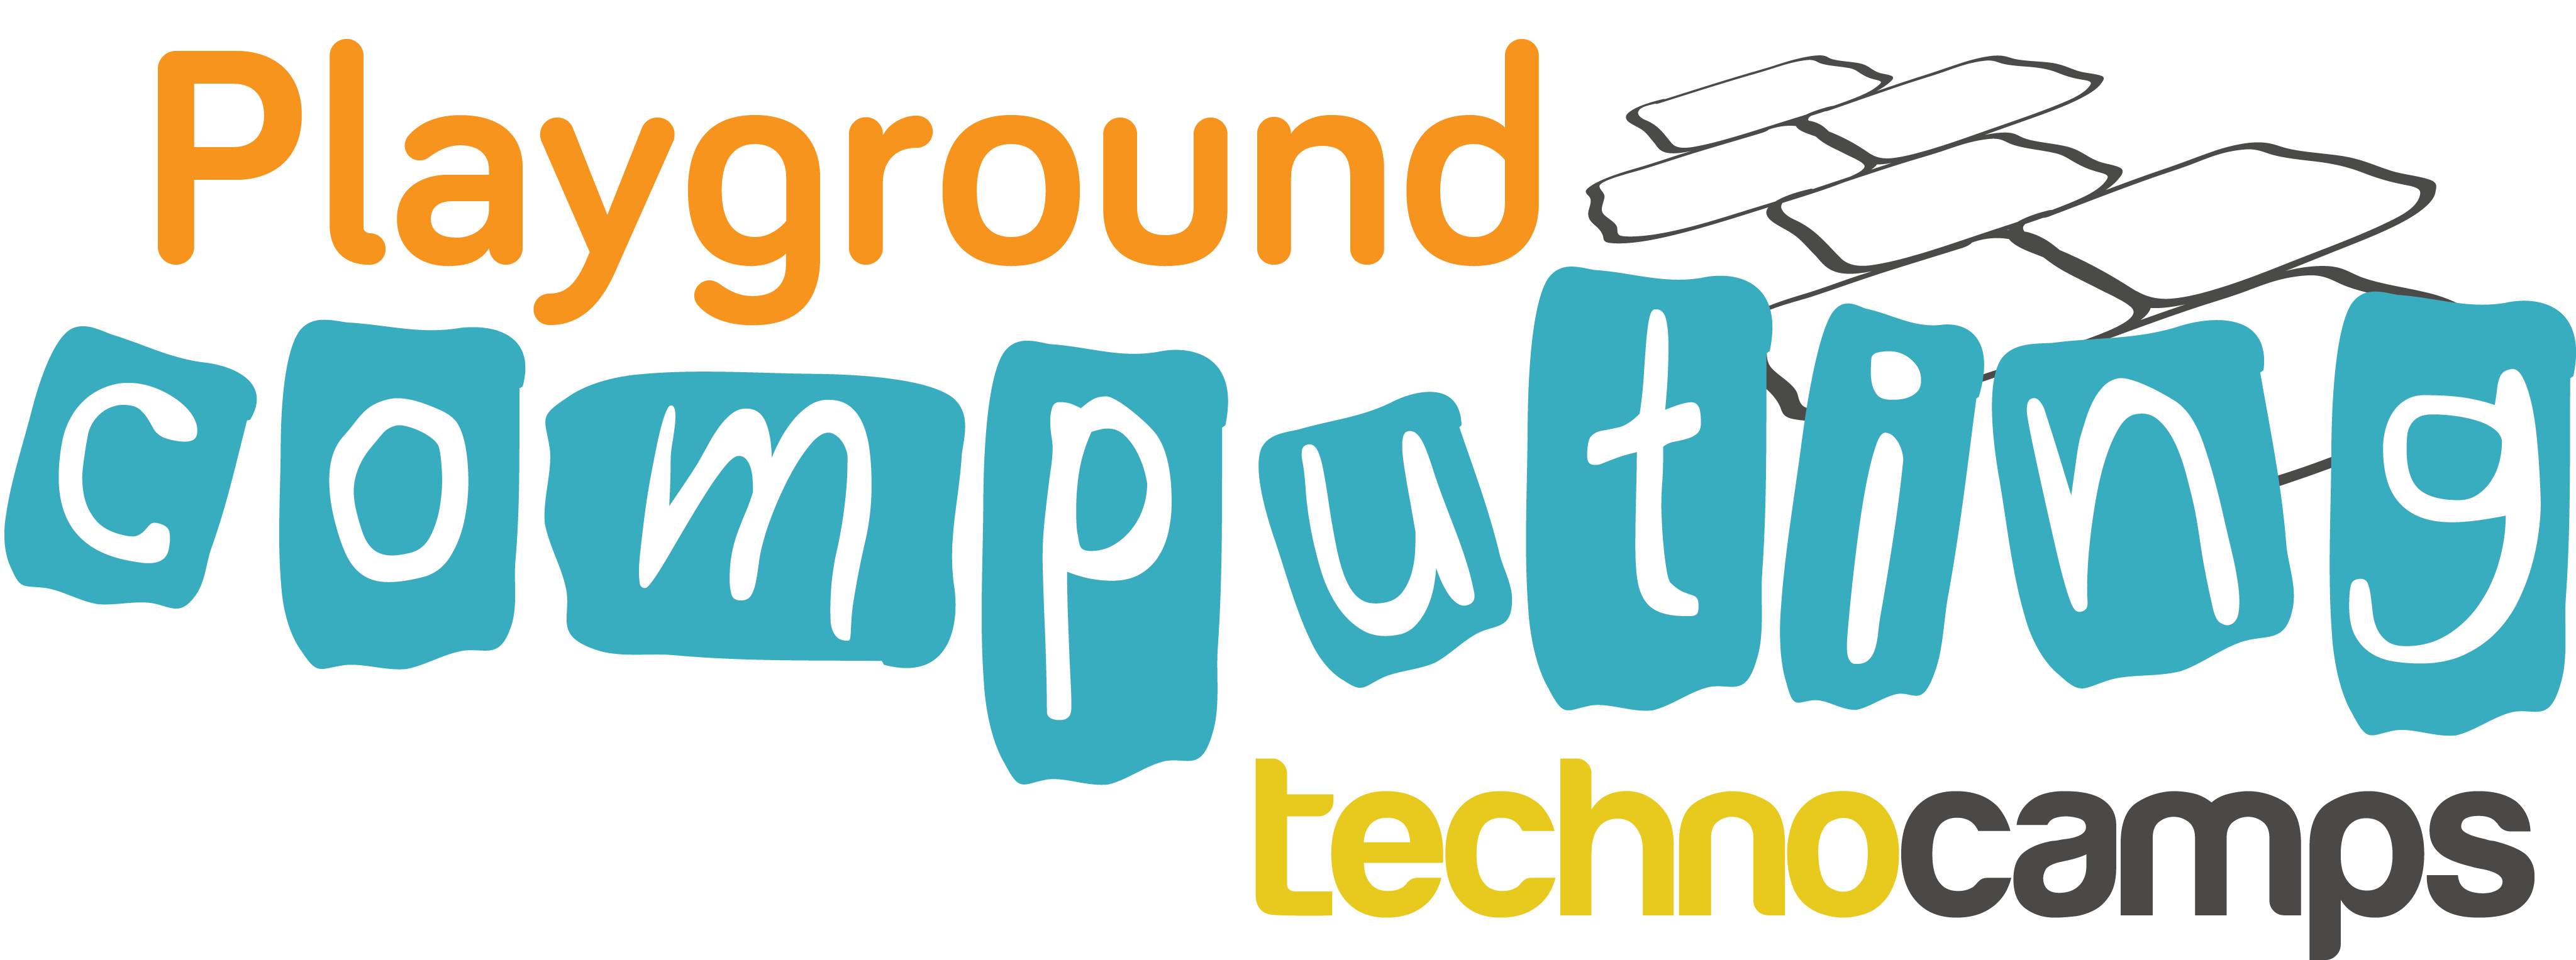 Playground Computing logo